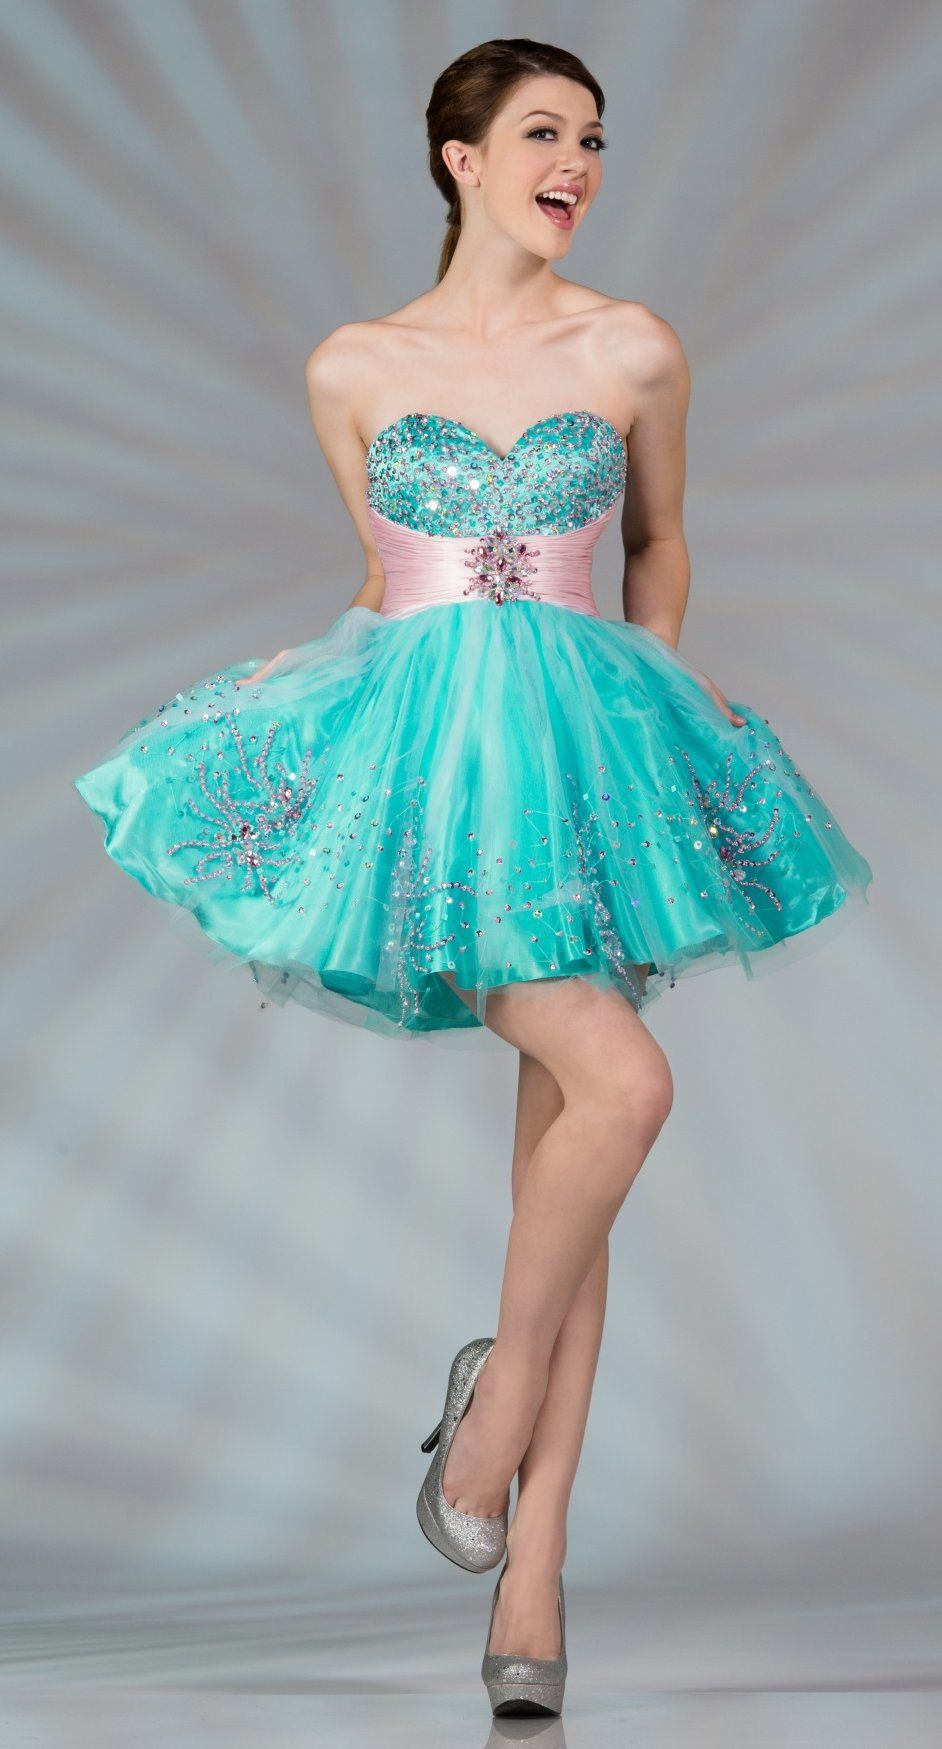 Strapless Studded Bodice Turquoise Pink Sweet 16 Birthday Dress ...